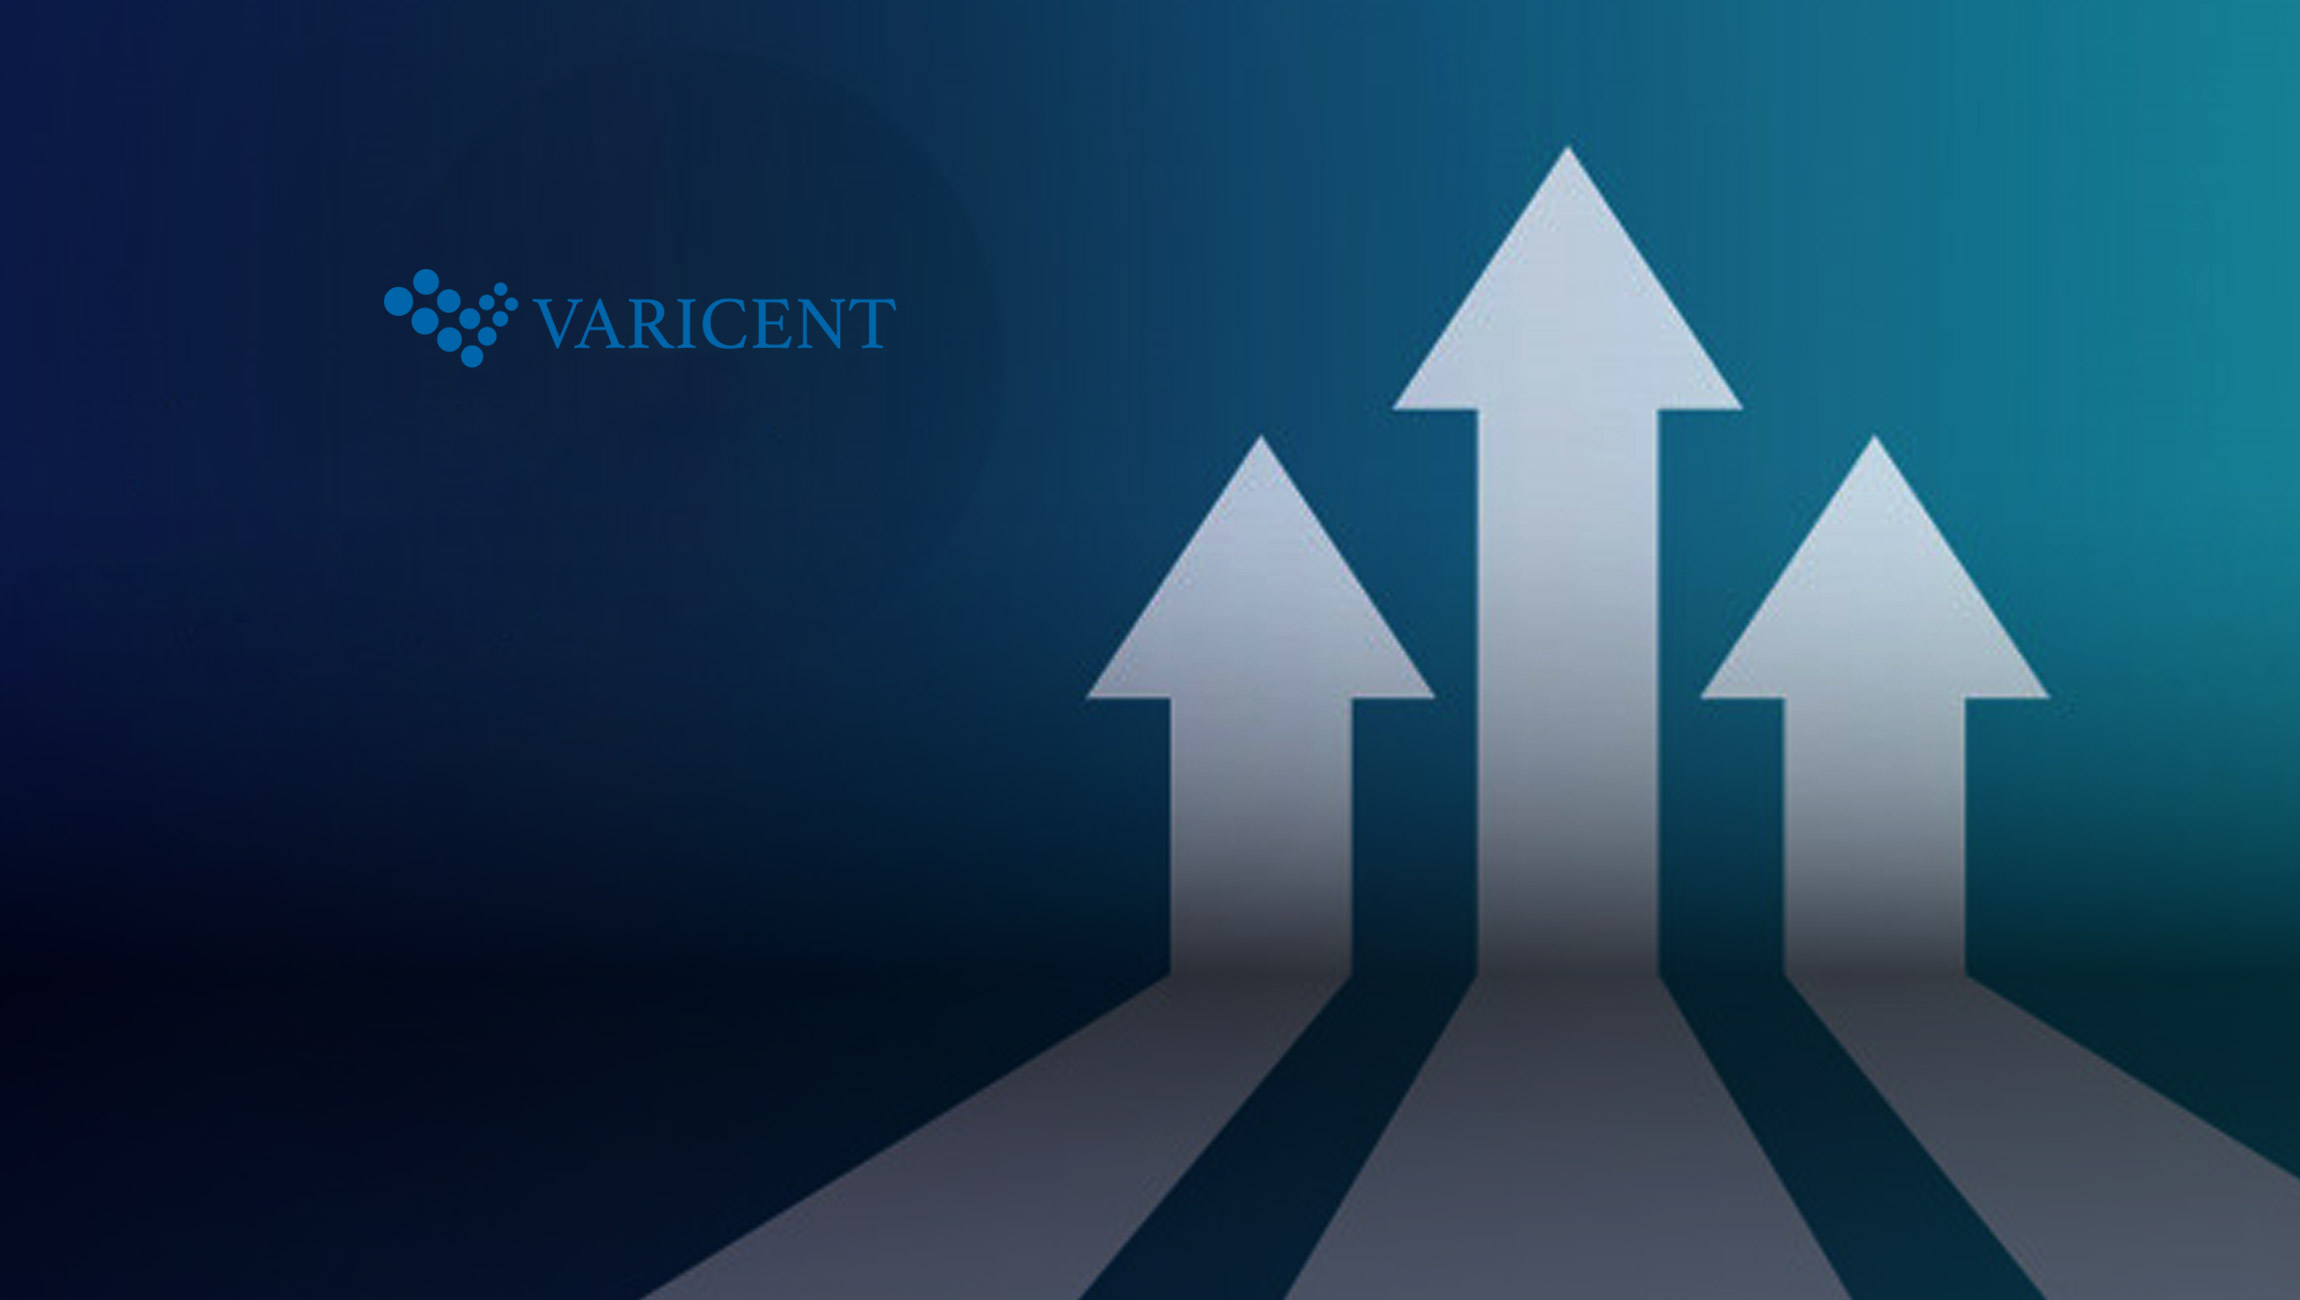 Varicent (IBM) Named a Leader in 2020 Gartner Magic Quadrant for Sales Performance Management for the Seventh Consecutive Time